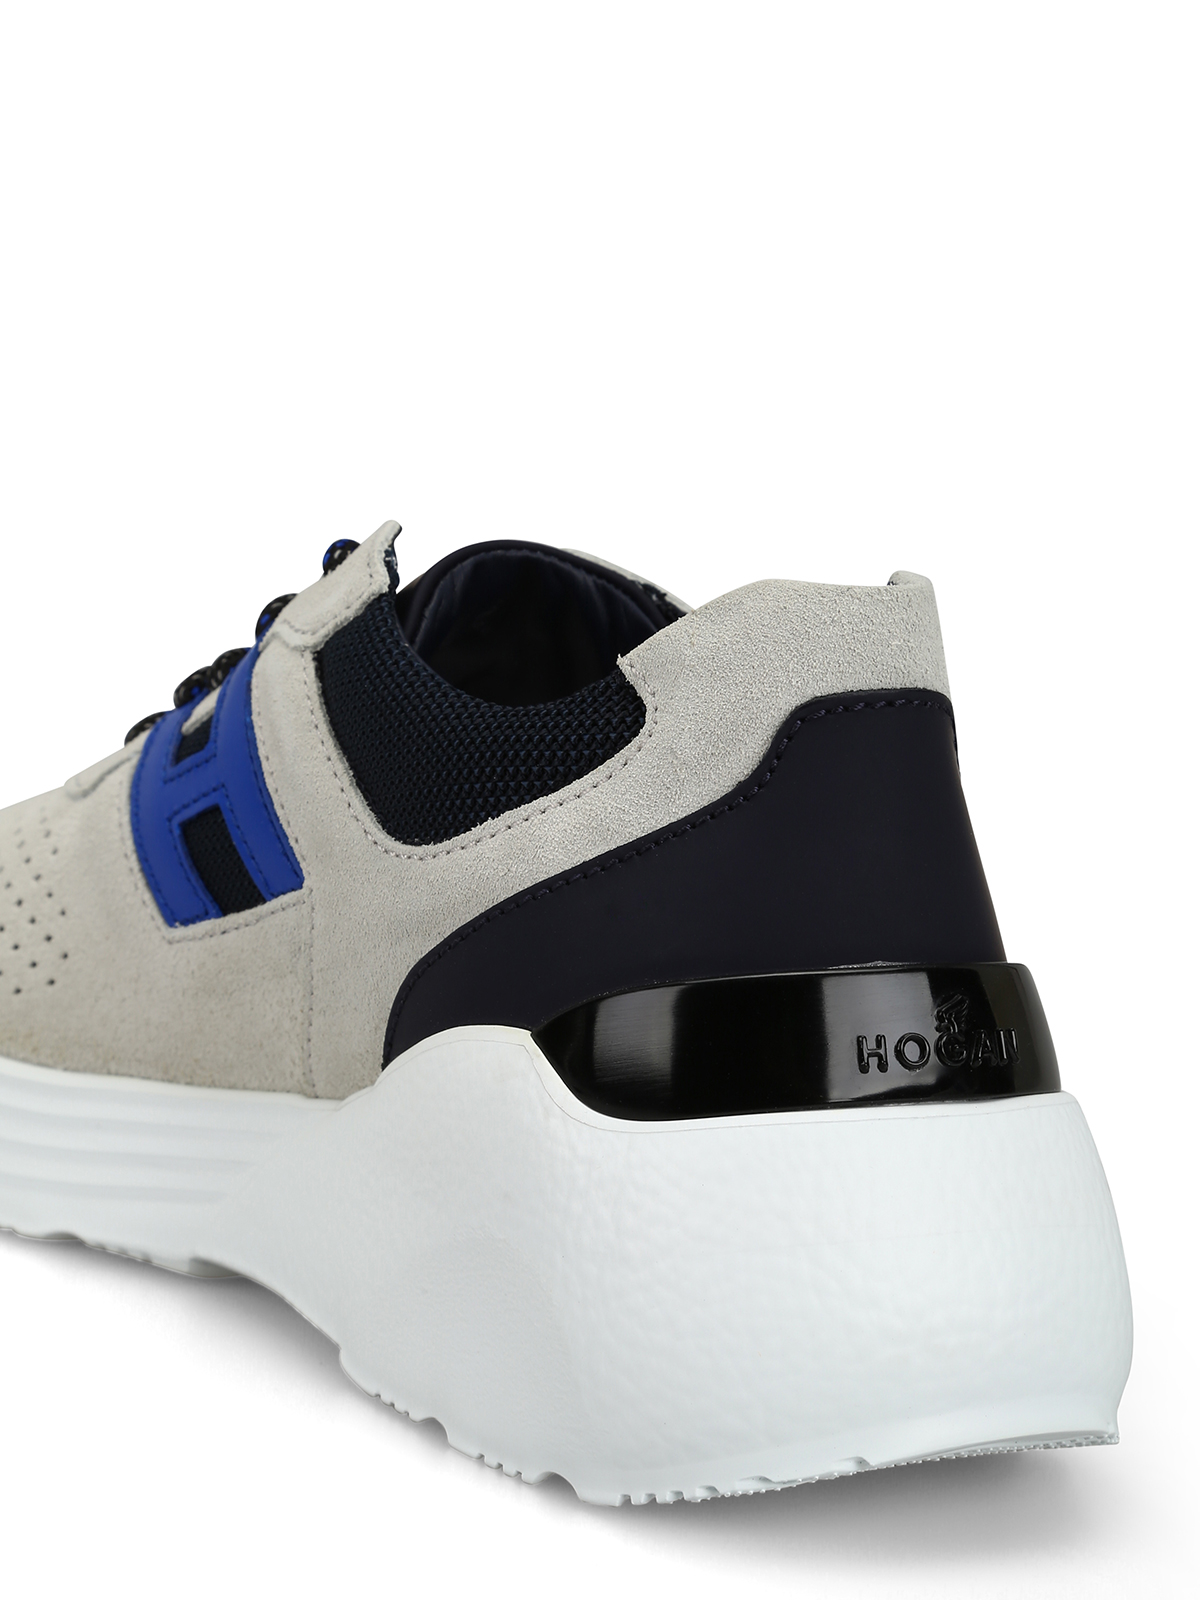 Trainers Hogan - Active One beige and blue sneakers ...